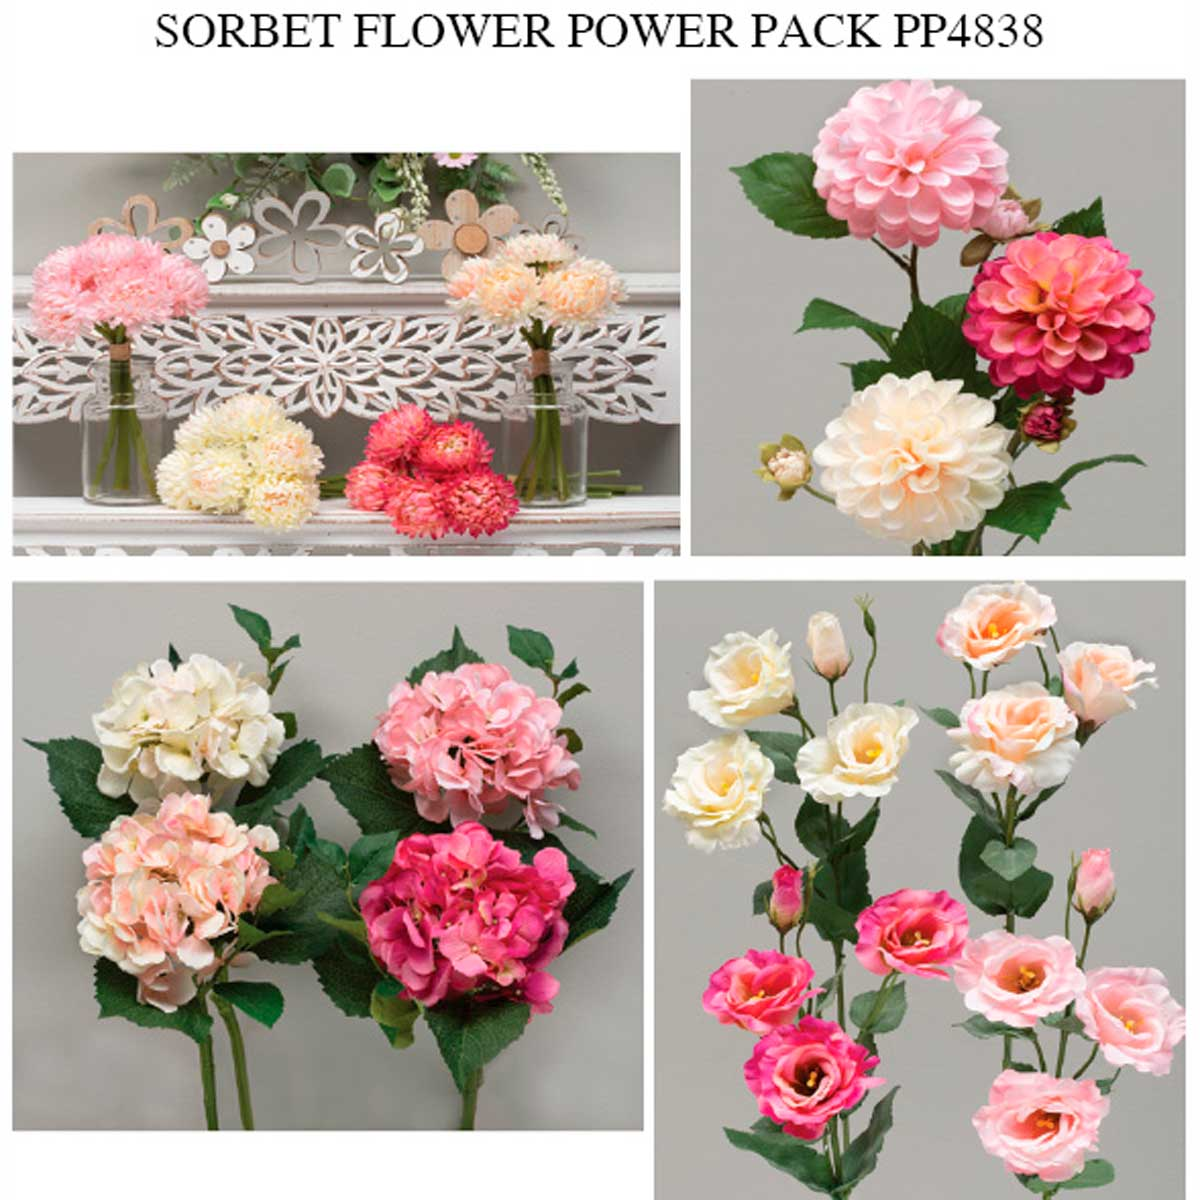 ROMANCE SORBET FLOWER POWER PACK 45 UNITS